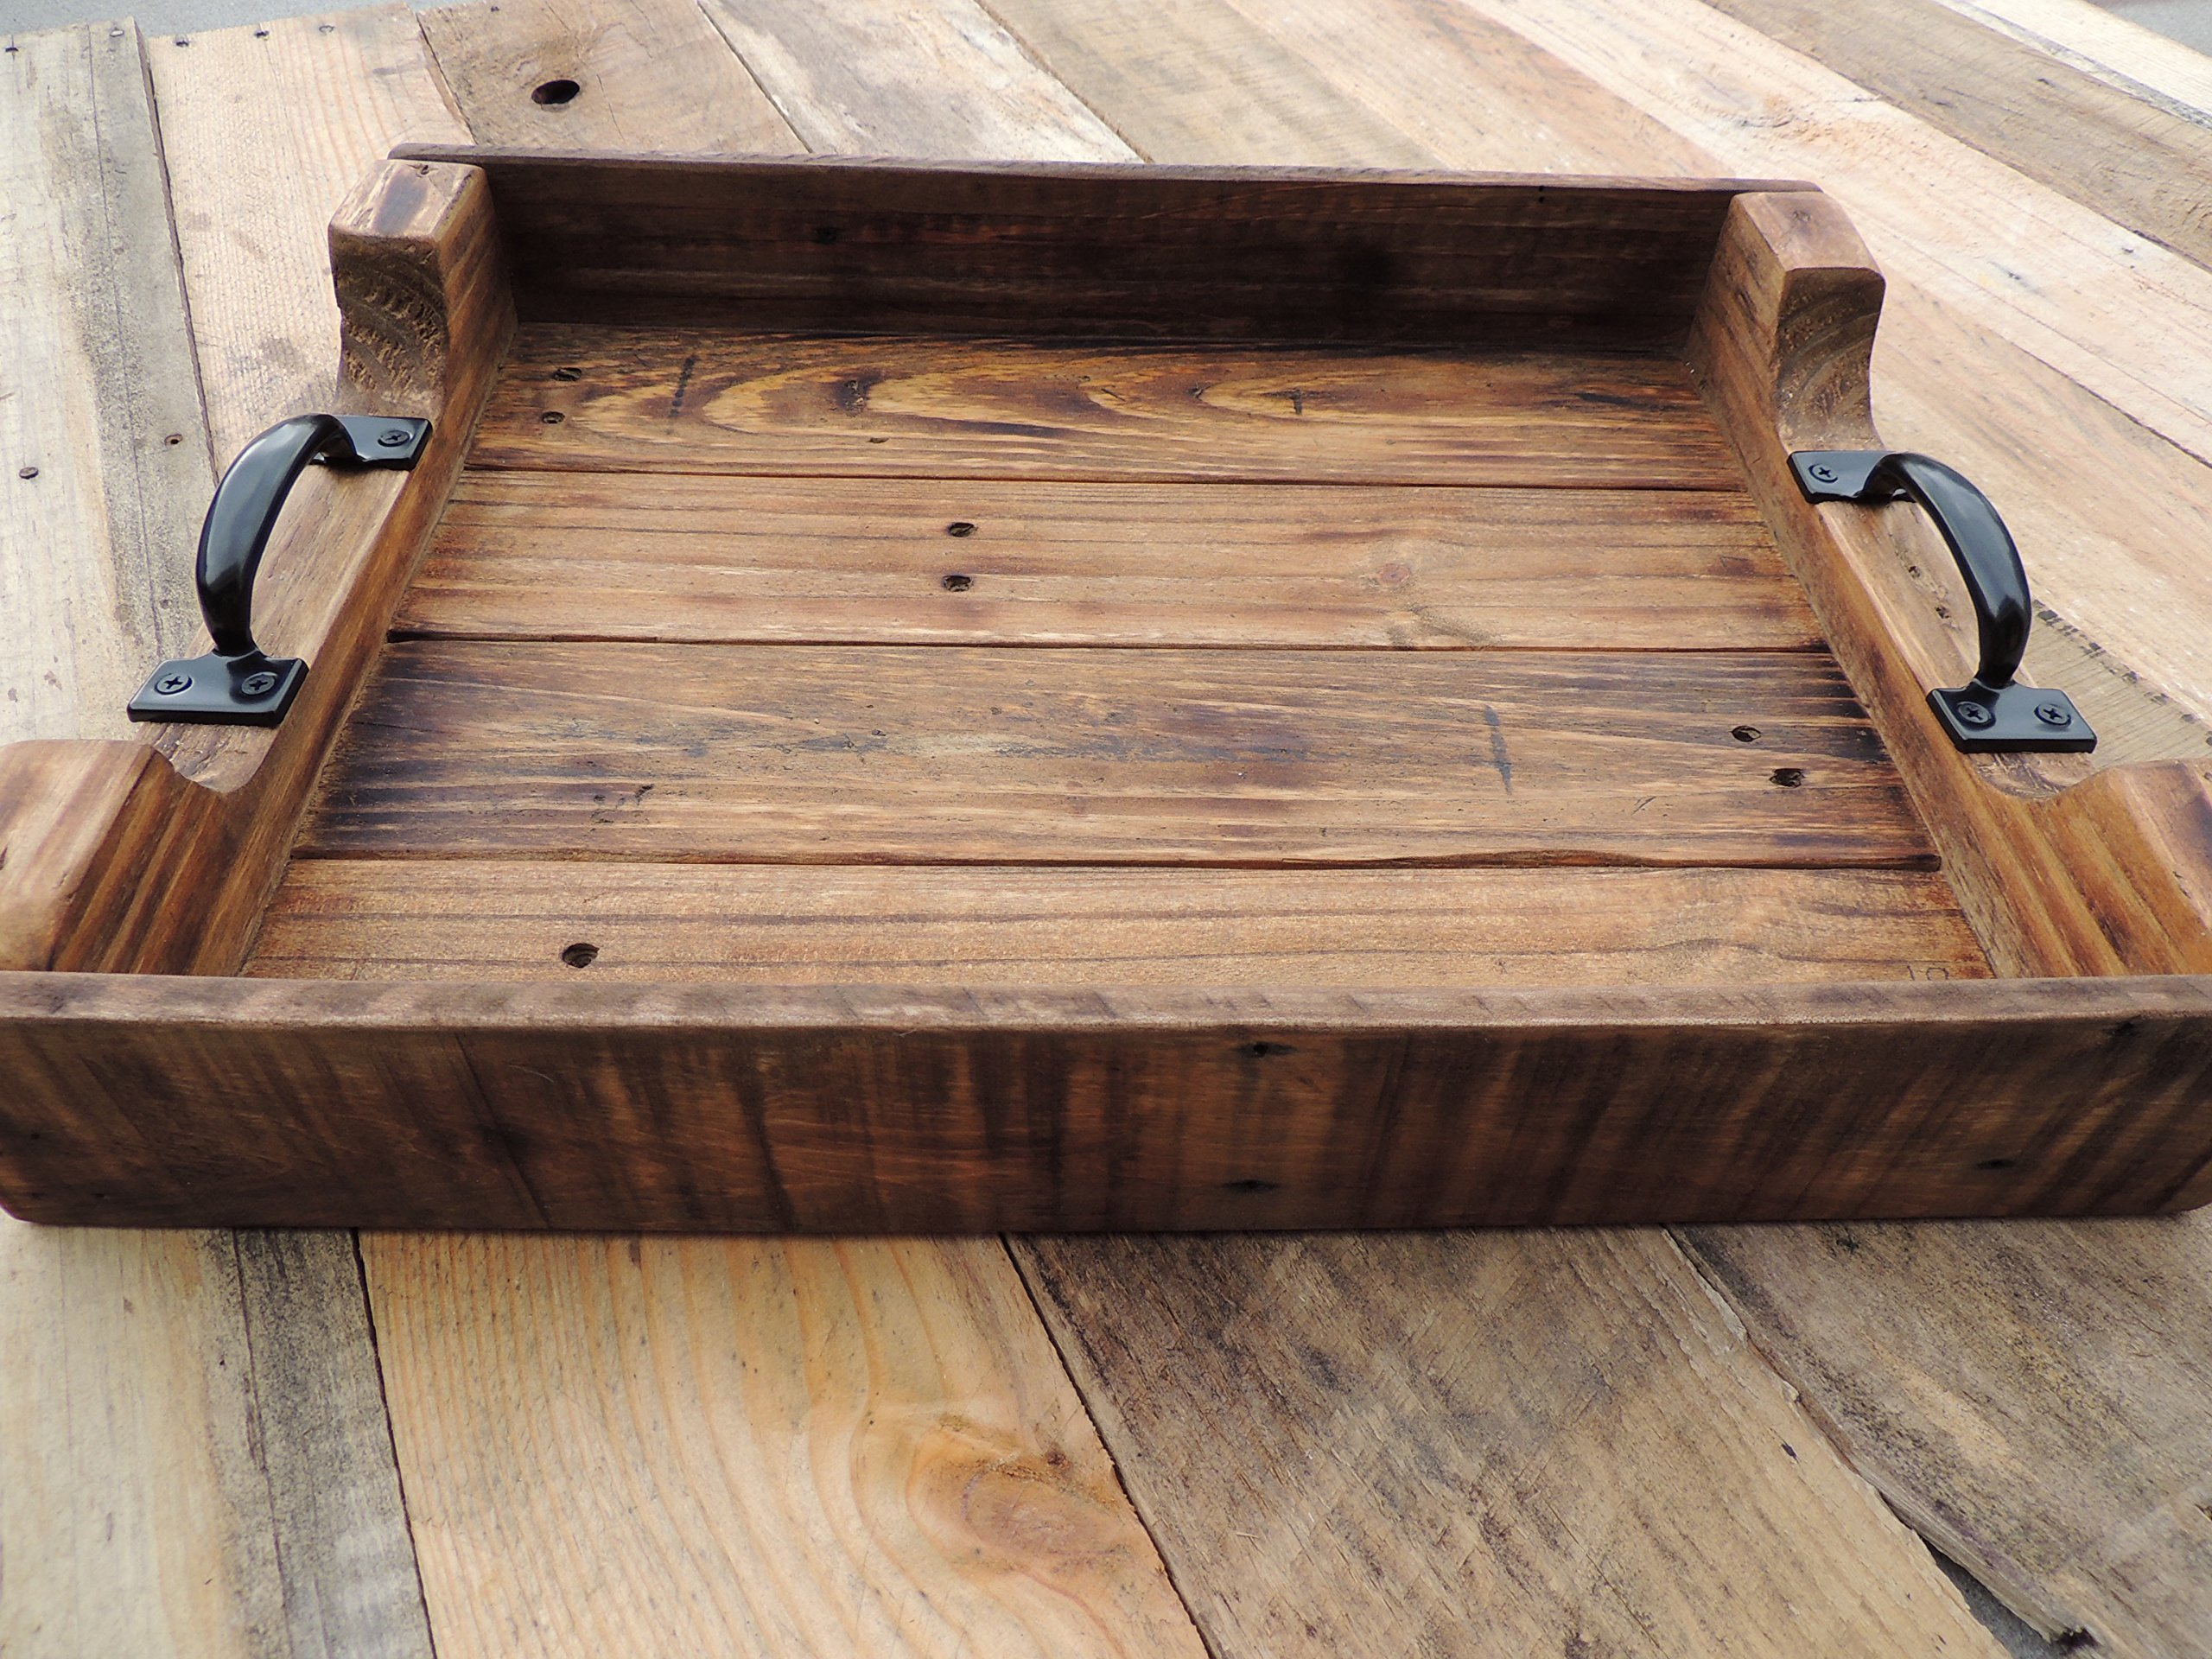 Rustic Wood Coffee Table Ottoman Serving Tray - Large